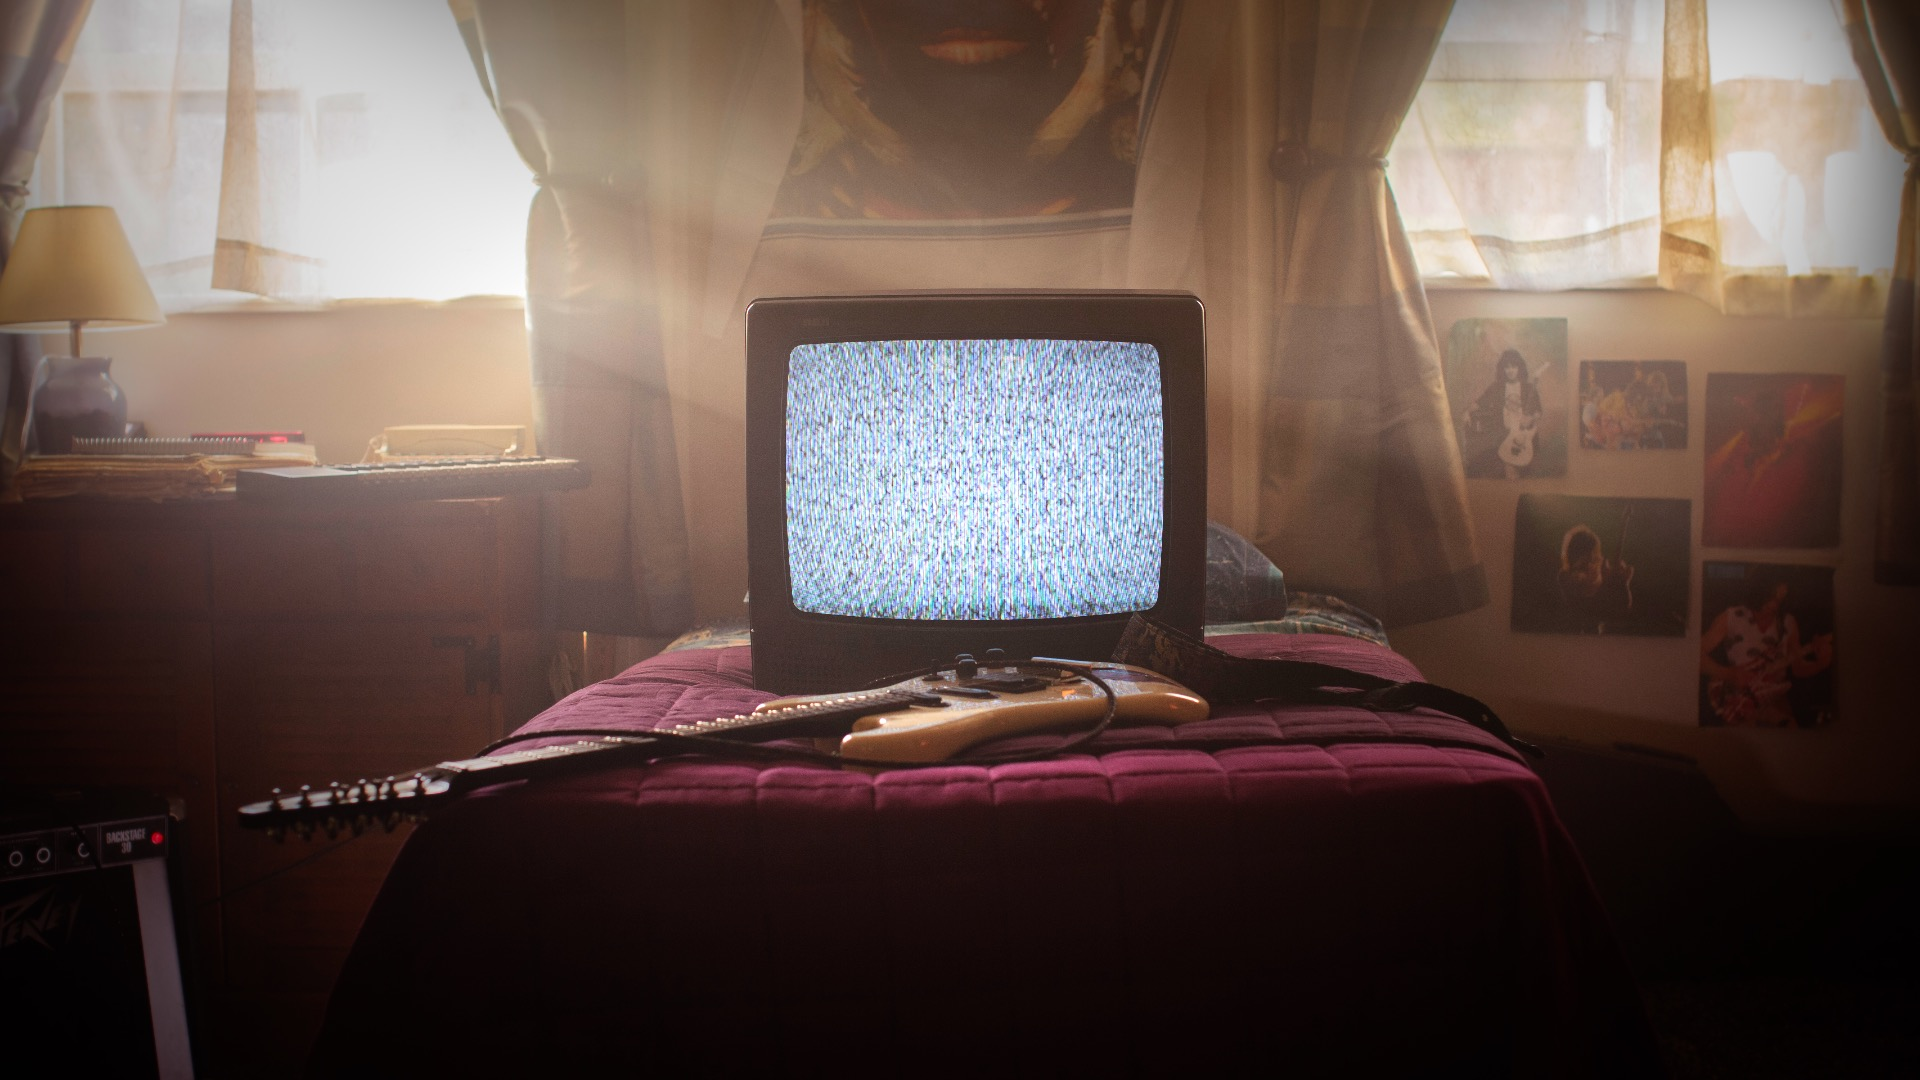 Analog television on a bed with a guitar